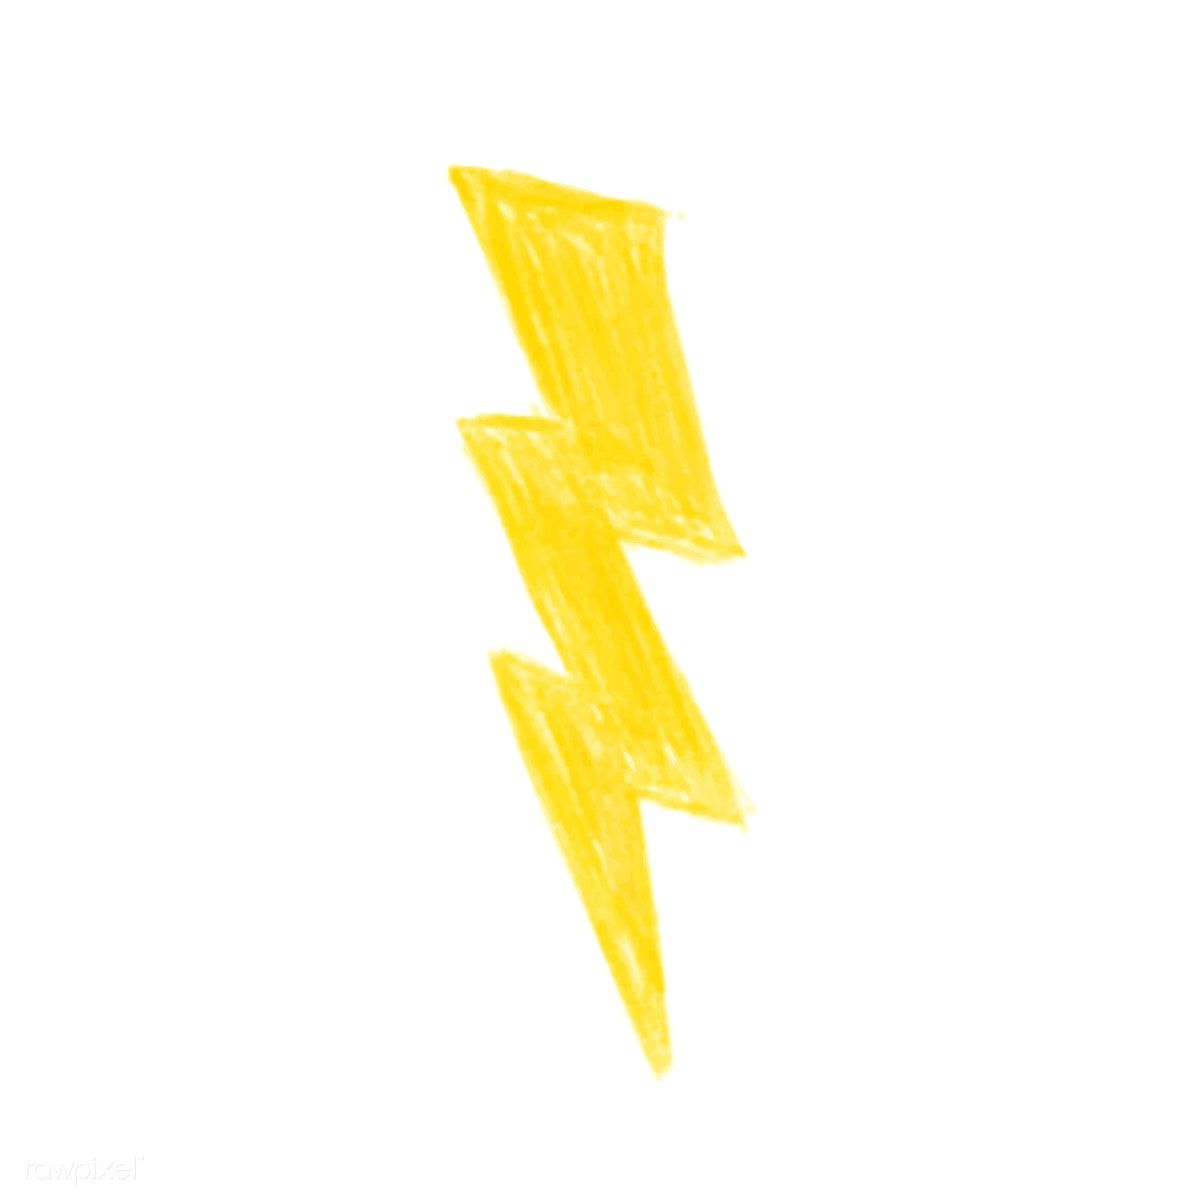 Illustration Of Hand Drawn Lightning Bolt Icon Isolated On White Background How To Draw Hands Lightning Bolt Brain Icon